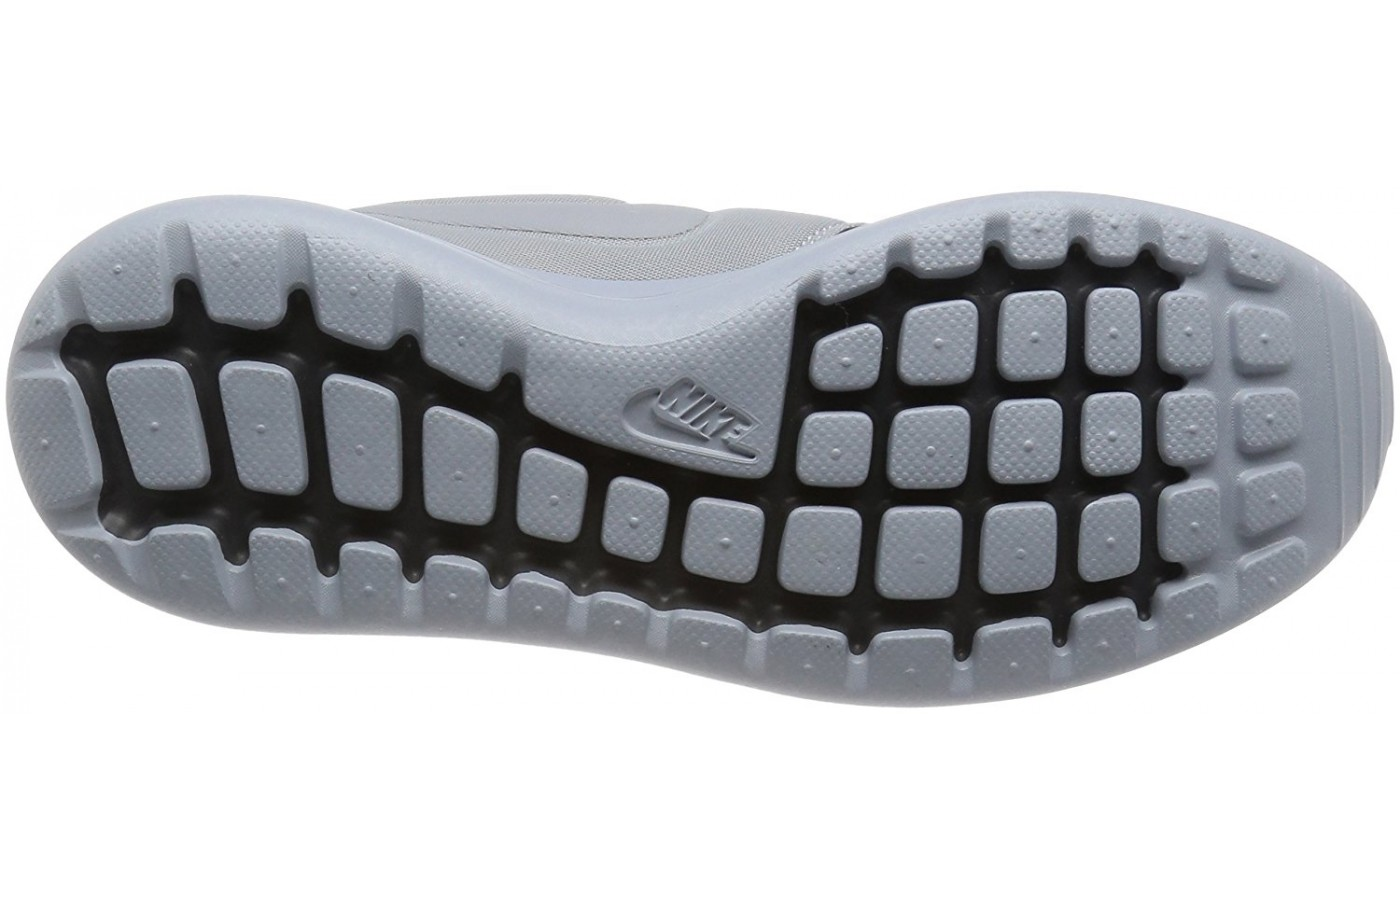 A bottom view of the Nike Roshe 2 running shoe